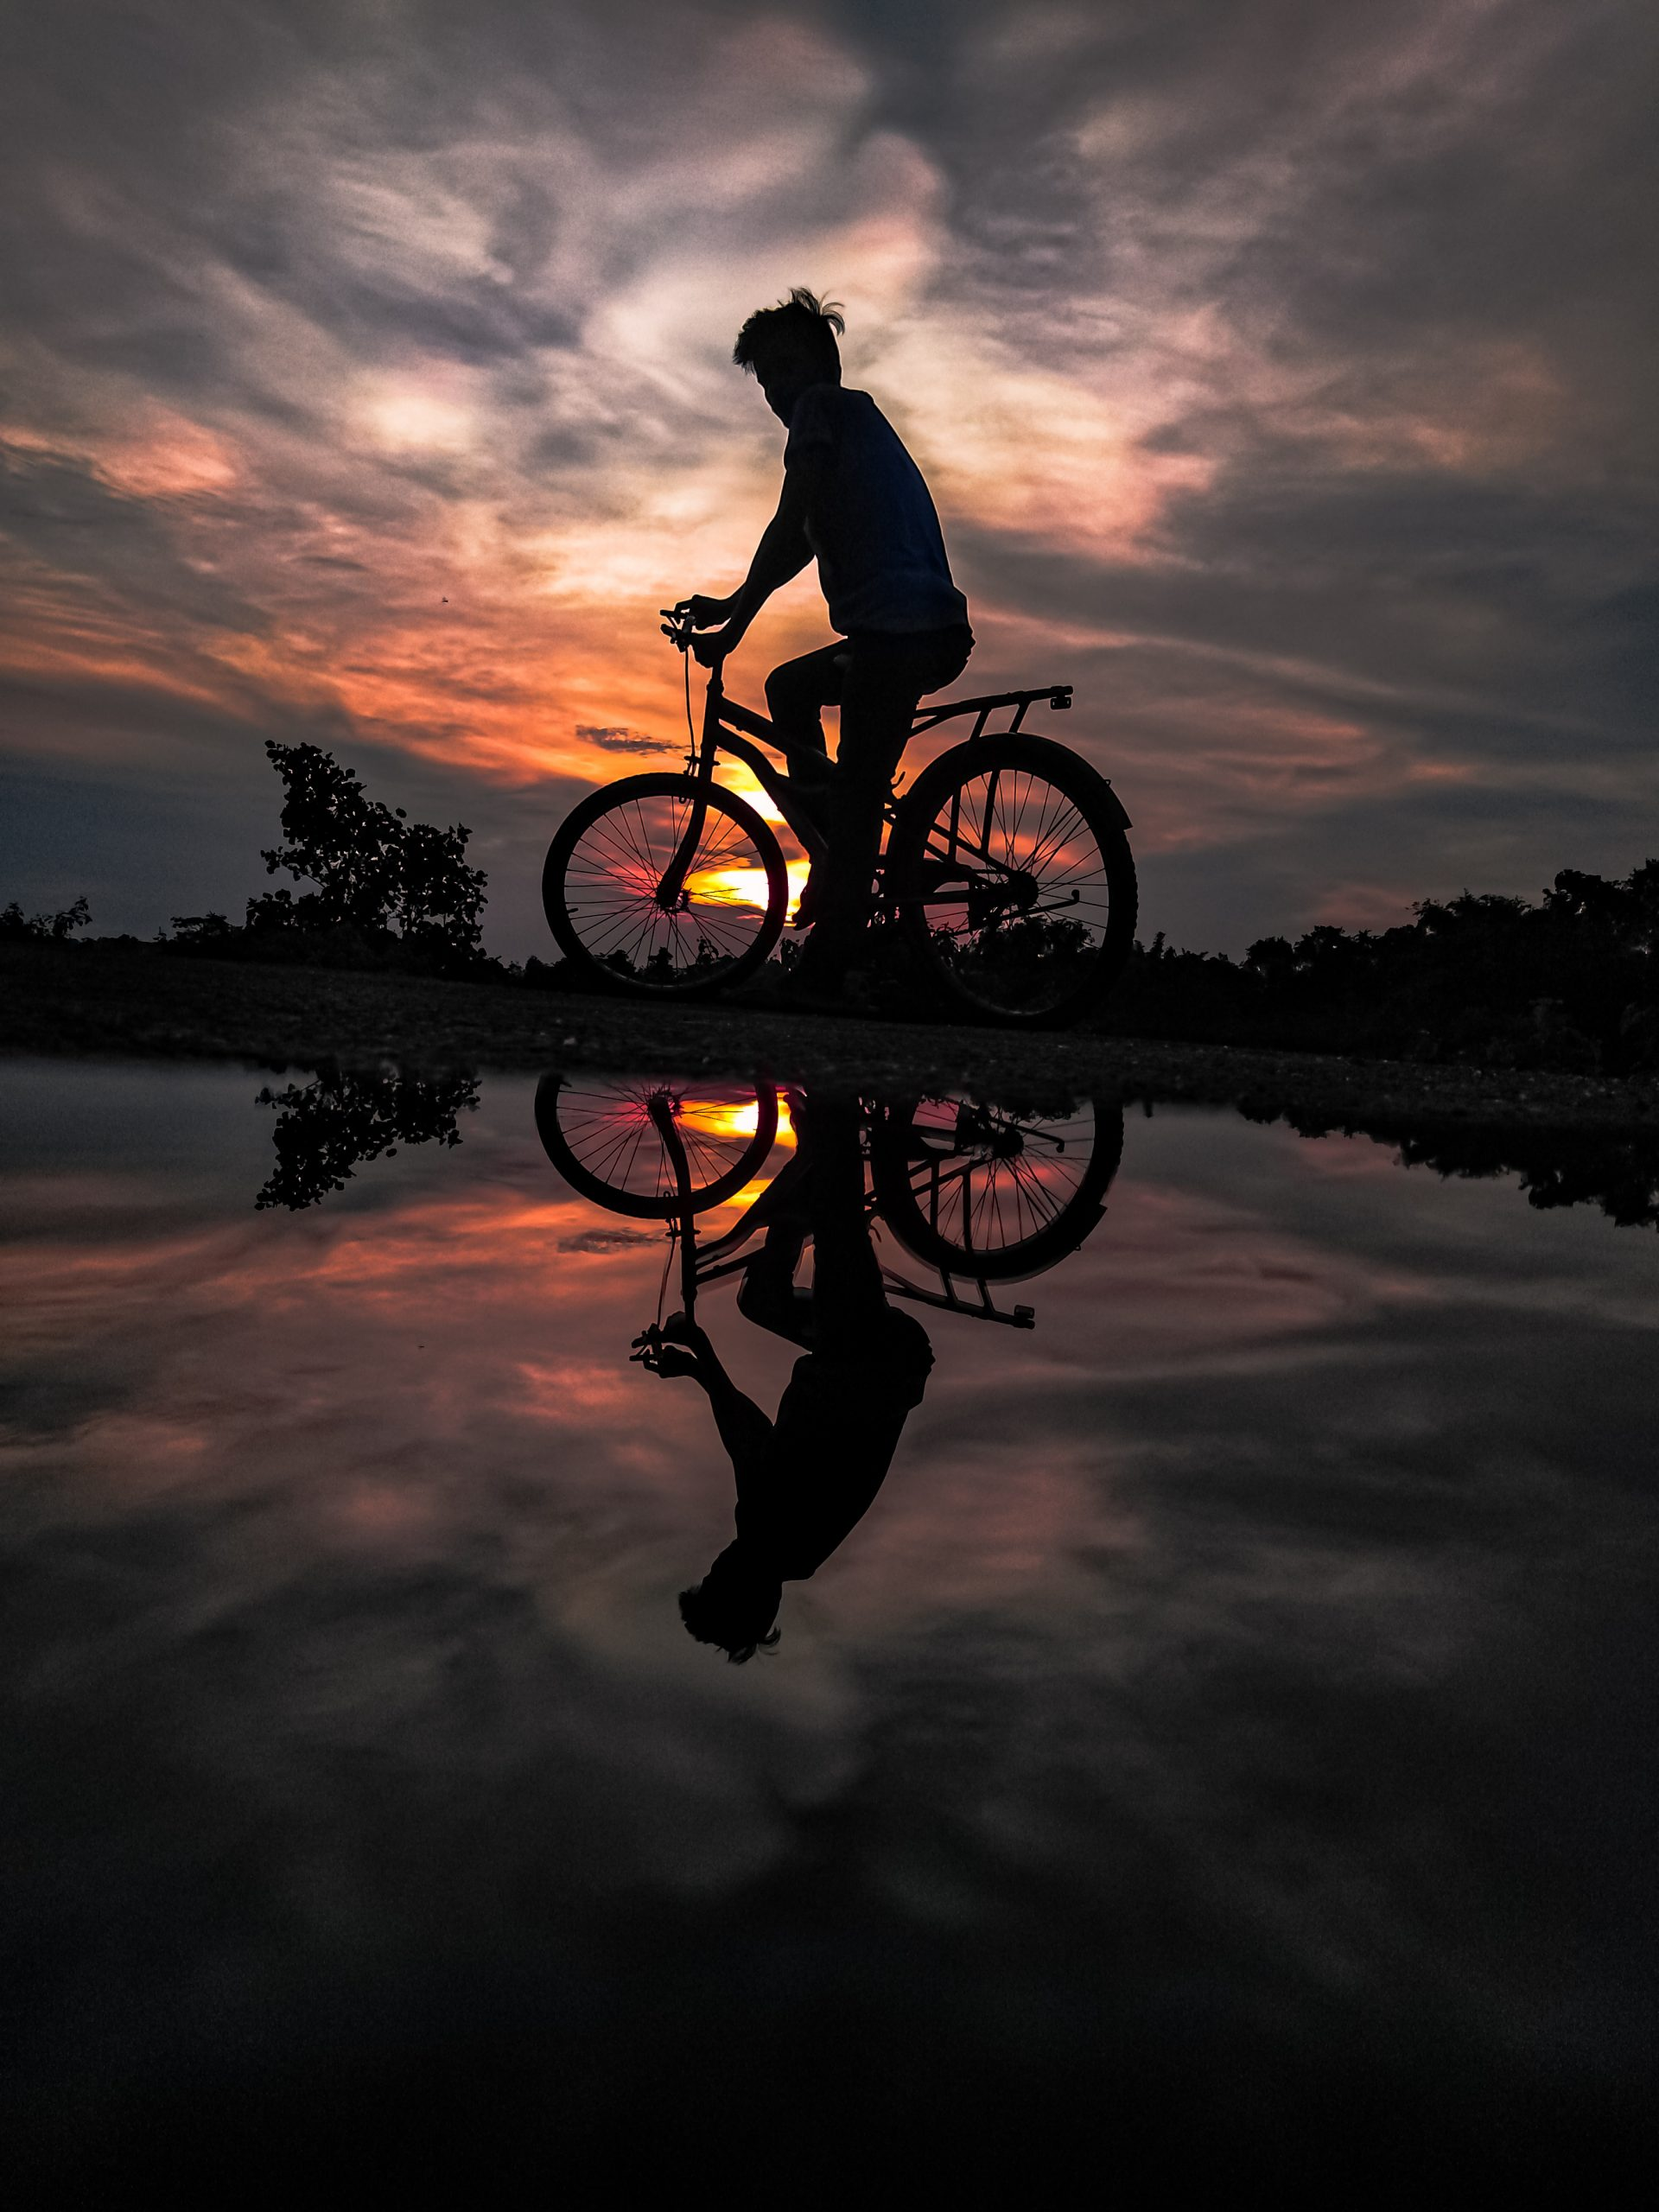 Man in a Bicycle Watching Sunset Scenery